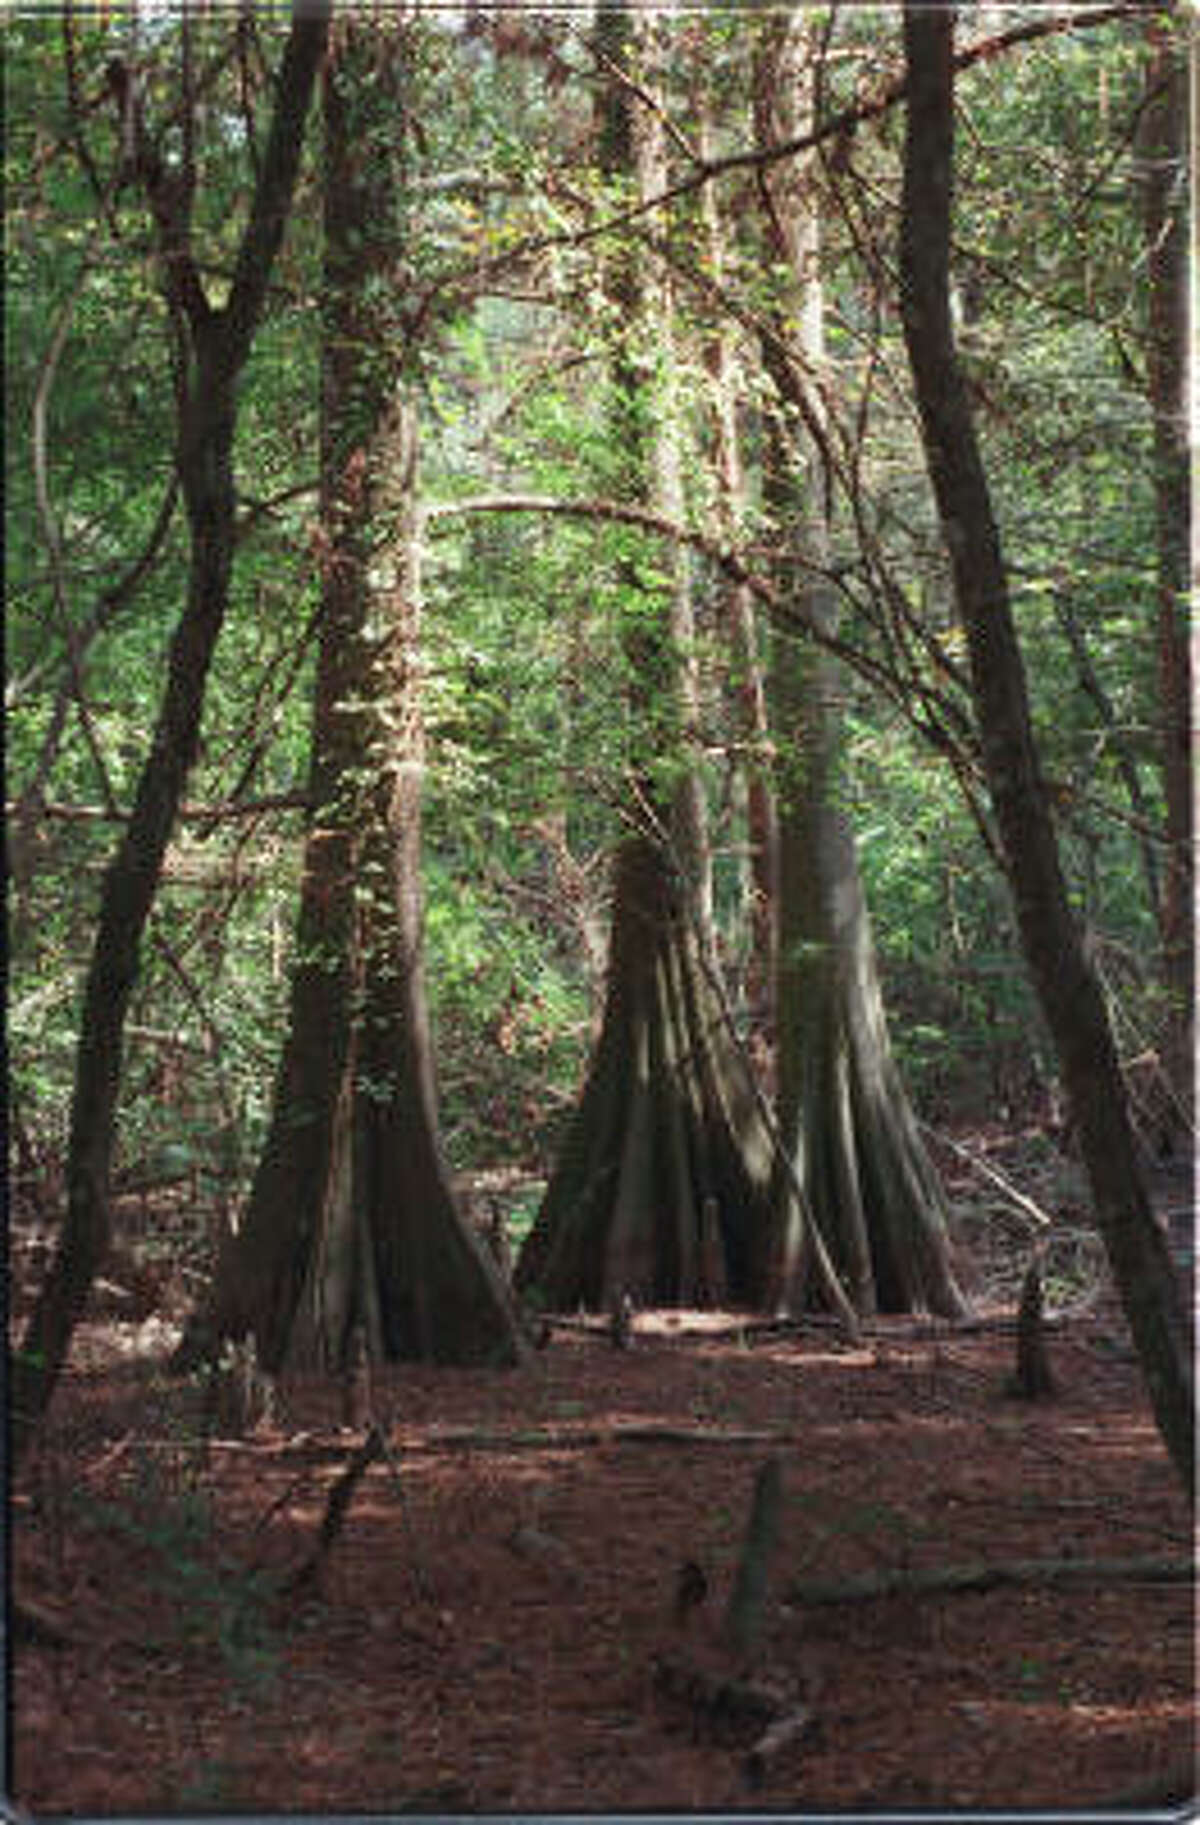 Bald cypress trees stretch toward the sky along the Post Oak Trail at the Mercer Arboretum & Botanic Gardens in Humble.